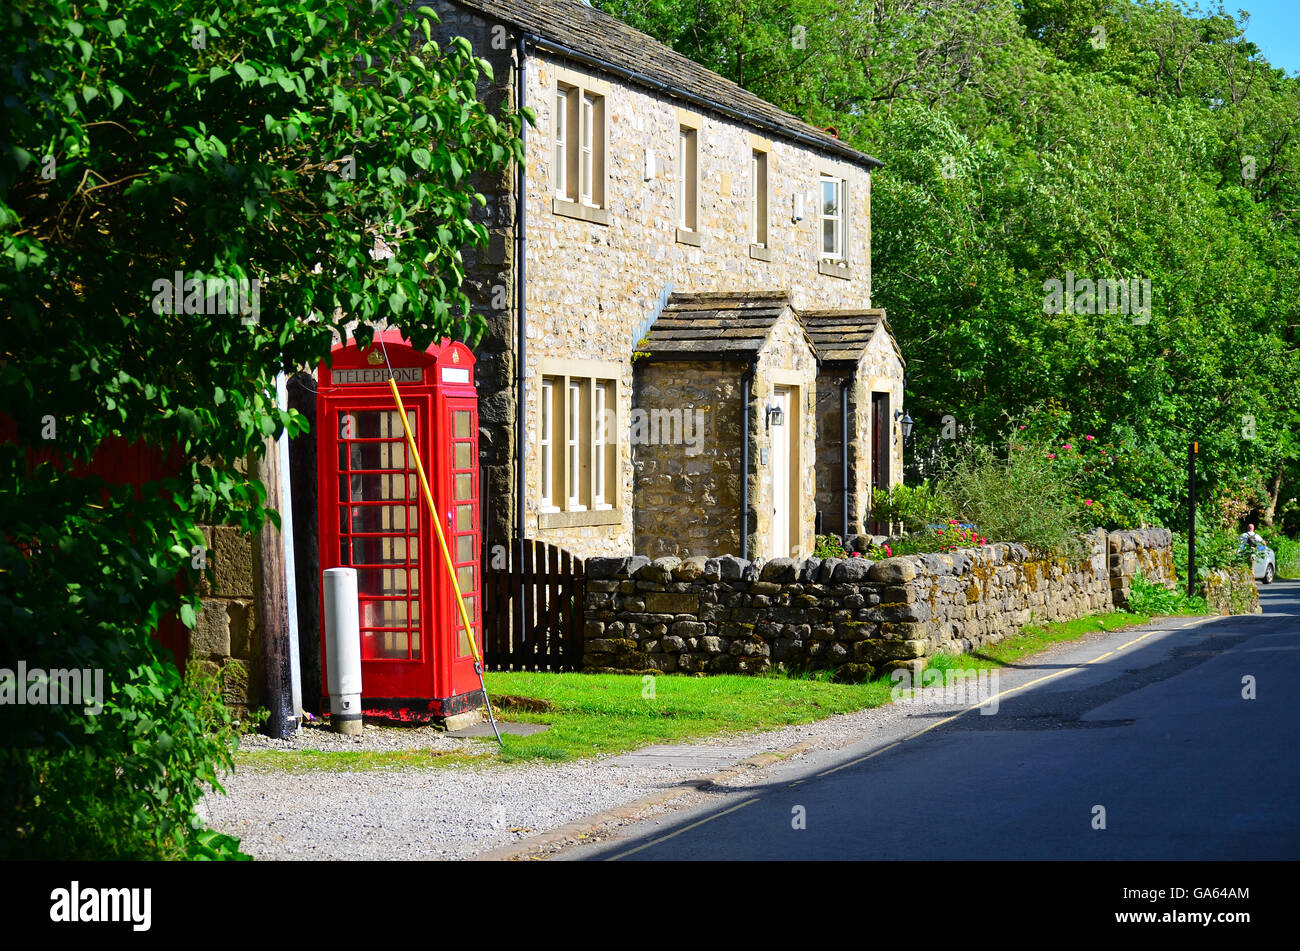 View of a red telephone box in Malham Cove, Yorkshire Dales National Park, near Settle, West Yorkshire - Stock Image